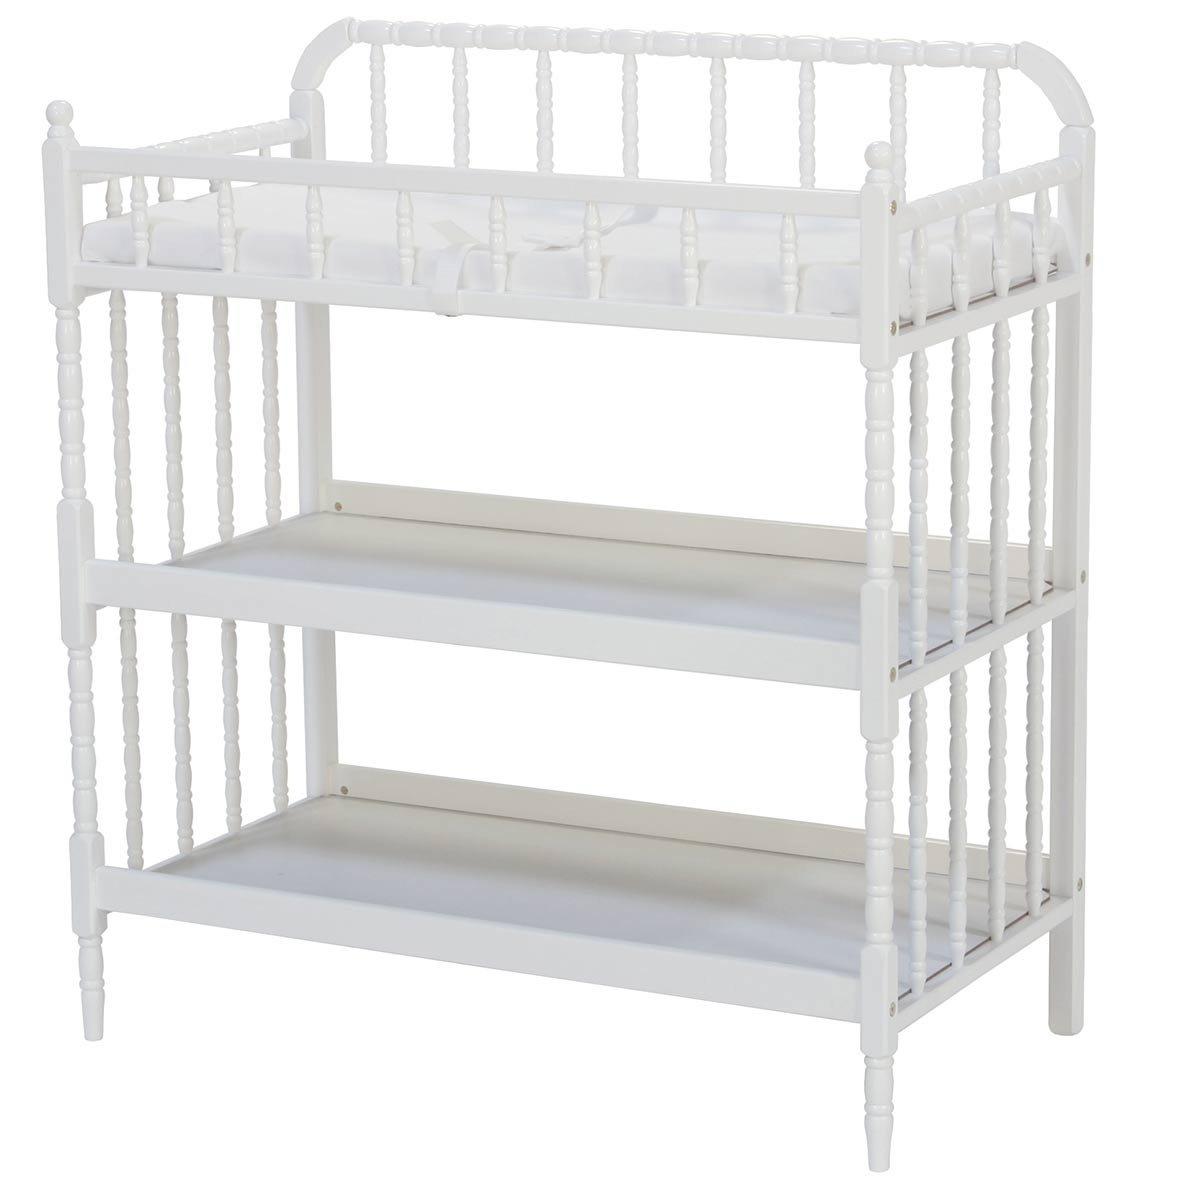 Jenny lind crib for sale - Davinci 2 Piece Nursery Set Jenny Lind 3 In 1 Convertible Crib And Changing Table In Sunshine Free Shipping